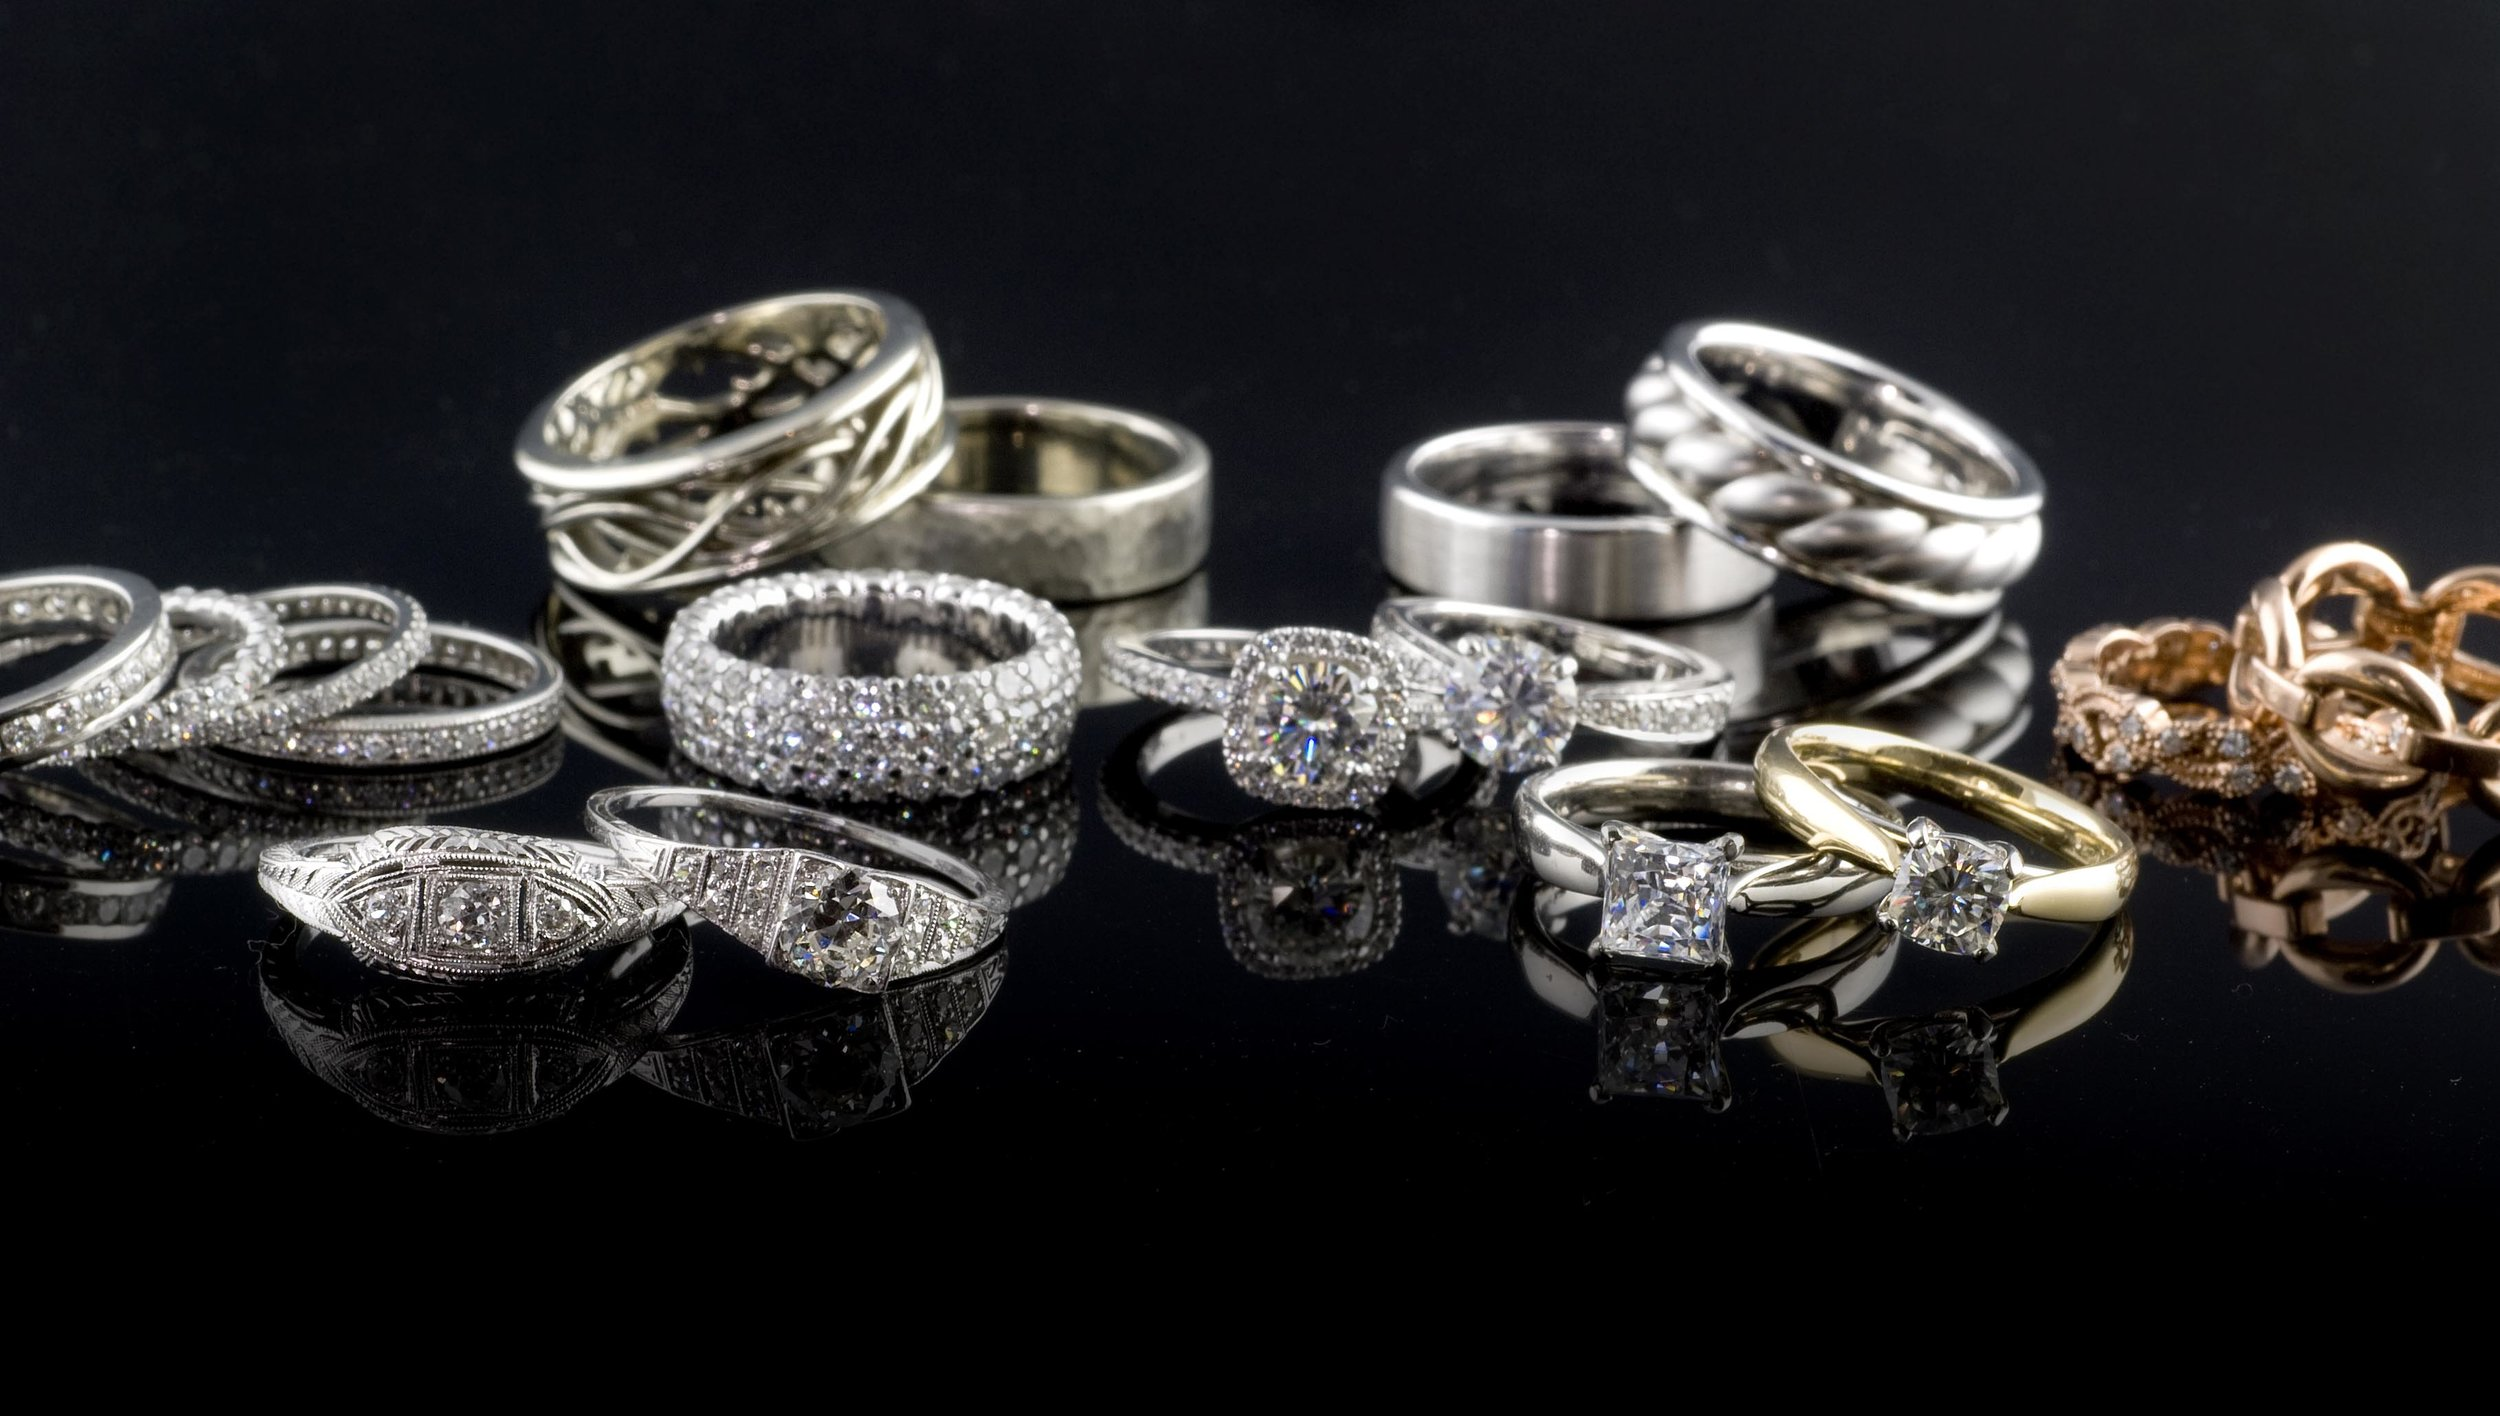 Whether you're imagining a custom design or an antique-inspired bridal set, Krombholz Jeweler's goal is to help make your experience fun and… engaging. They offer custom one-of-a-kind designs as well as an inspired collection that you won't find at the mall.